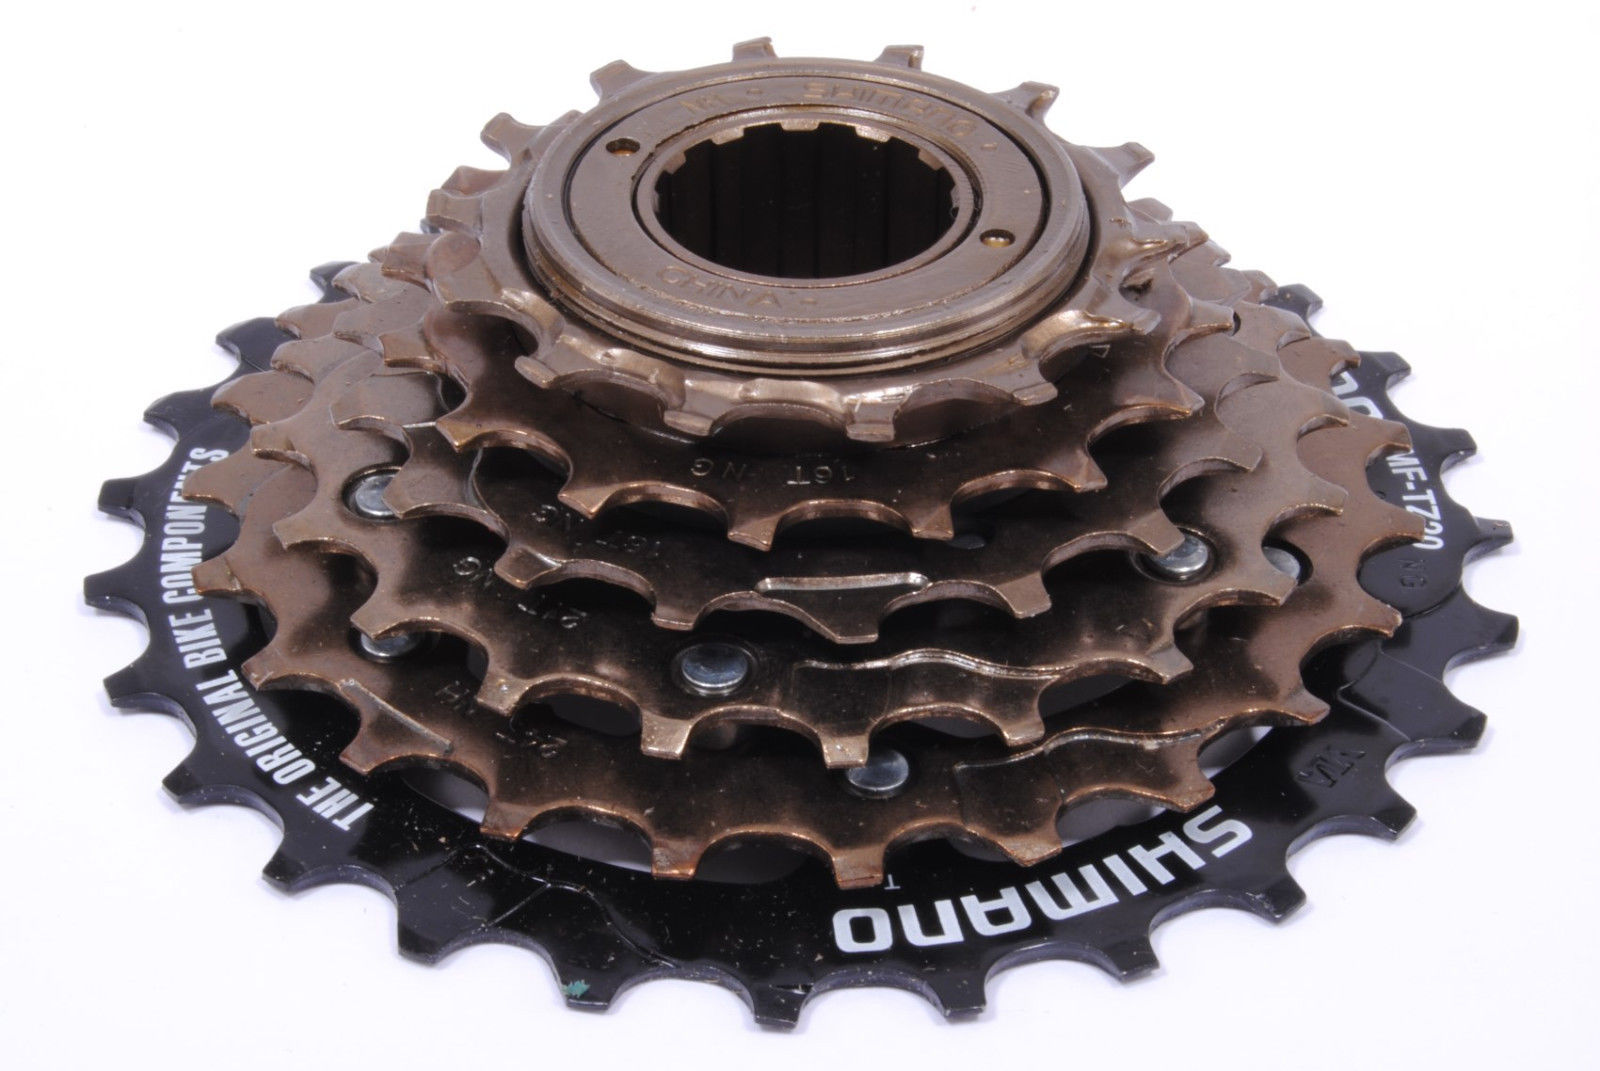 Shimano Tourney TZ500 6-Speed 14-28t Multi-speed freewheel